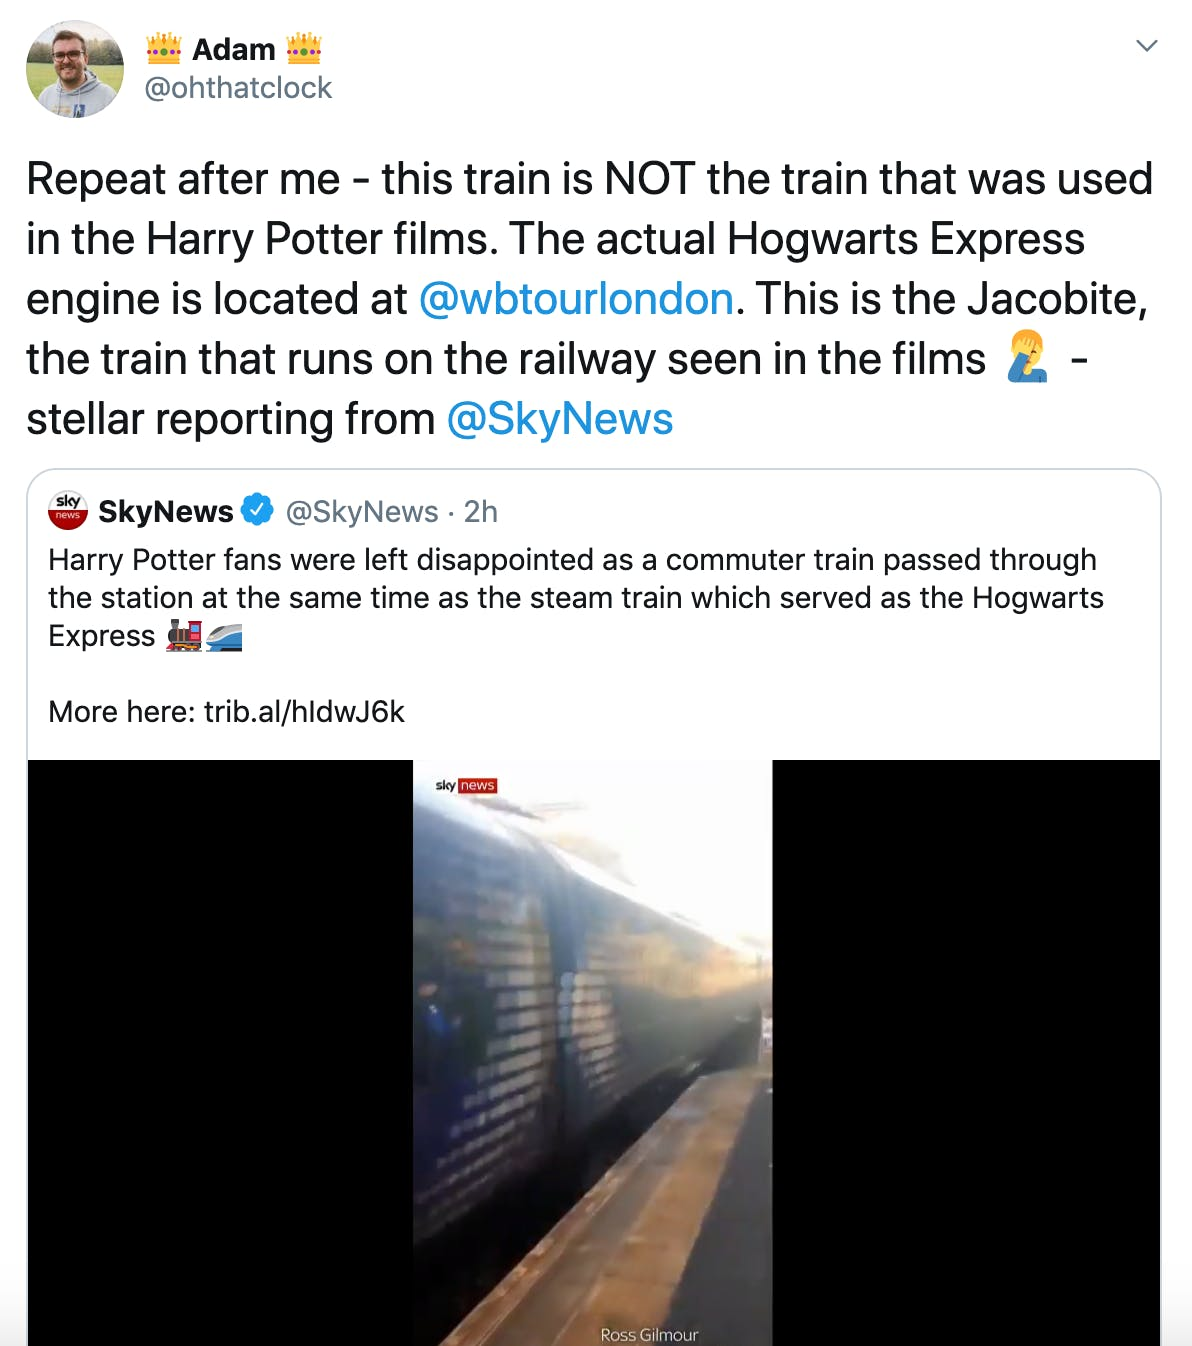 """""""Repeat after me - this train is NOT the train that was used in the Harry Potter films. The actual Hogwarts Express engine is located at  @wbtourlondon . This is the Jacobite, the train that runs on the railway seen in the films Man facepalming - stellar reporting from  @SkyNews"""" Embedded tweet from sky news featuring footage of the trains and the text """"Harry Potter fans were left disappointed as a commuter train passed through the station at the same time as the steam train which served as the Hogwarts Express Steam locomotiveHigh-speed train"""""""